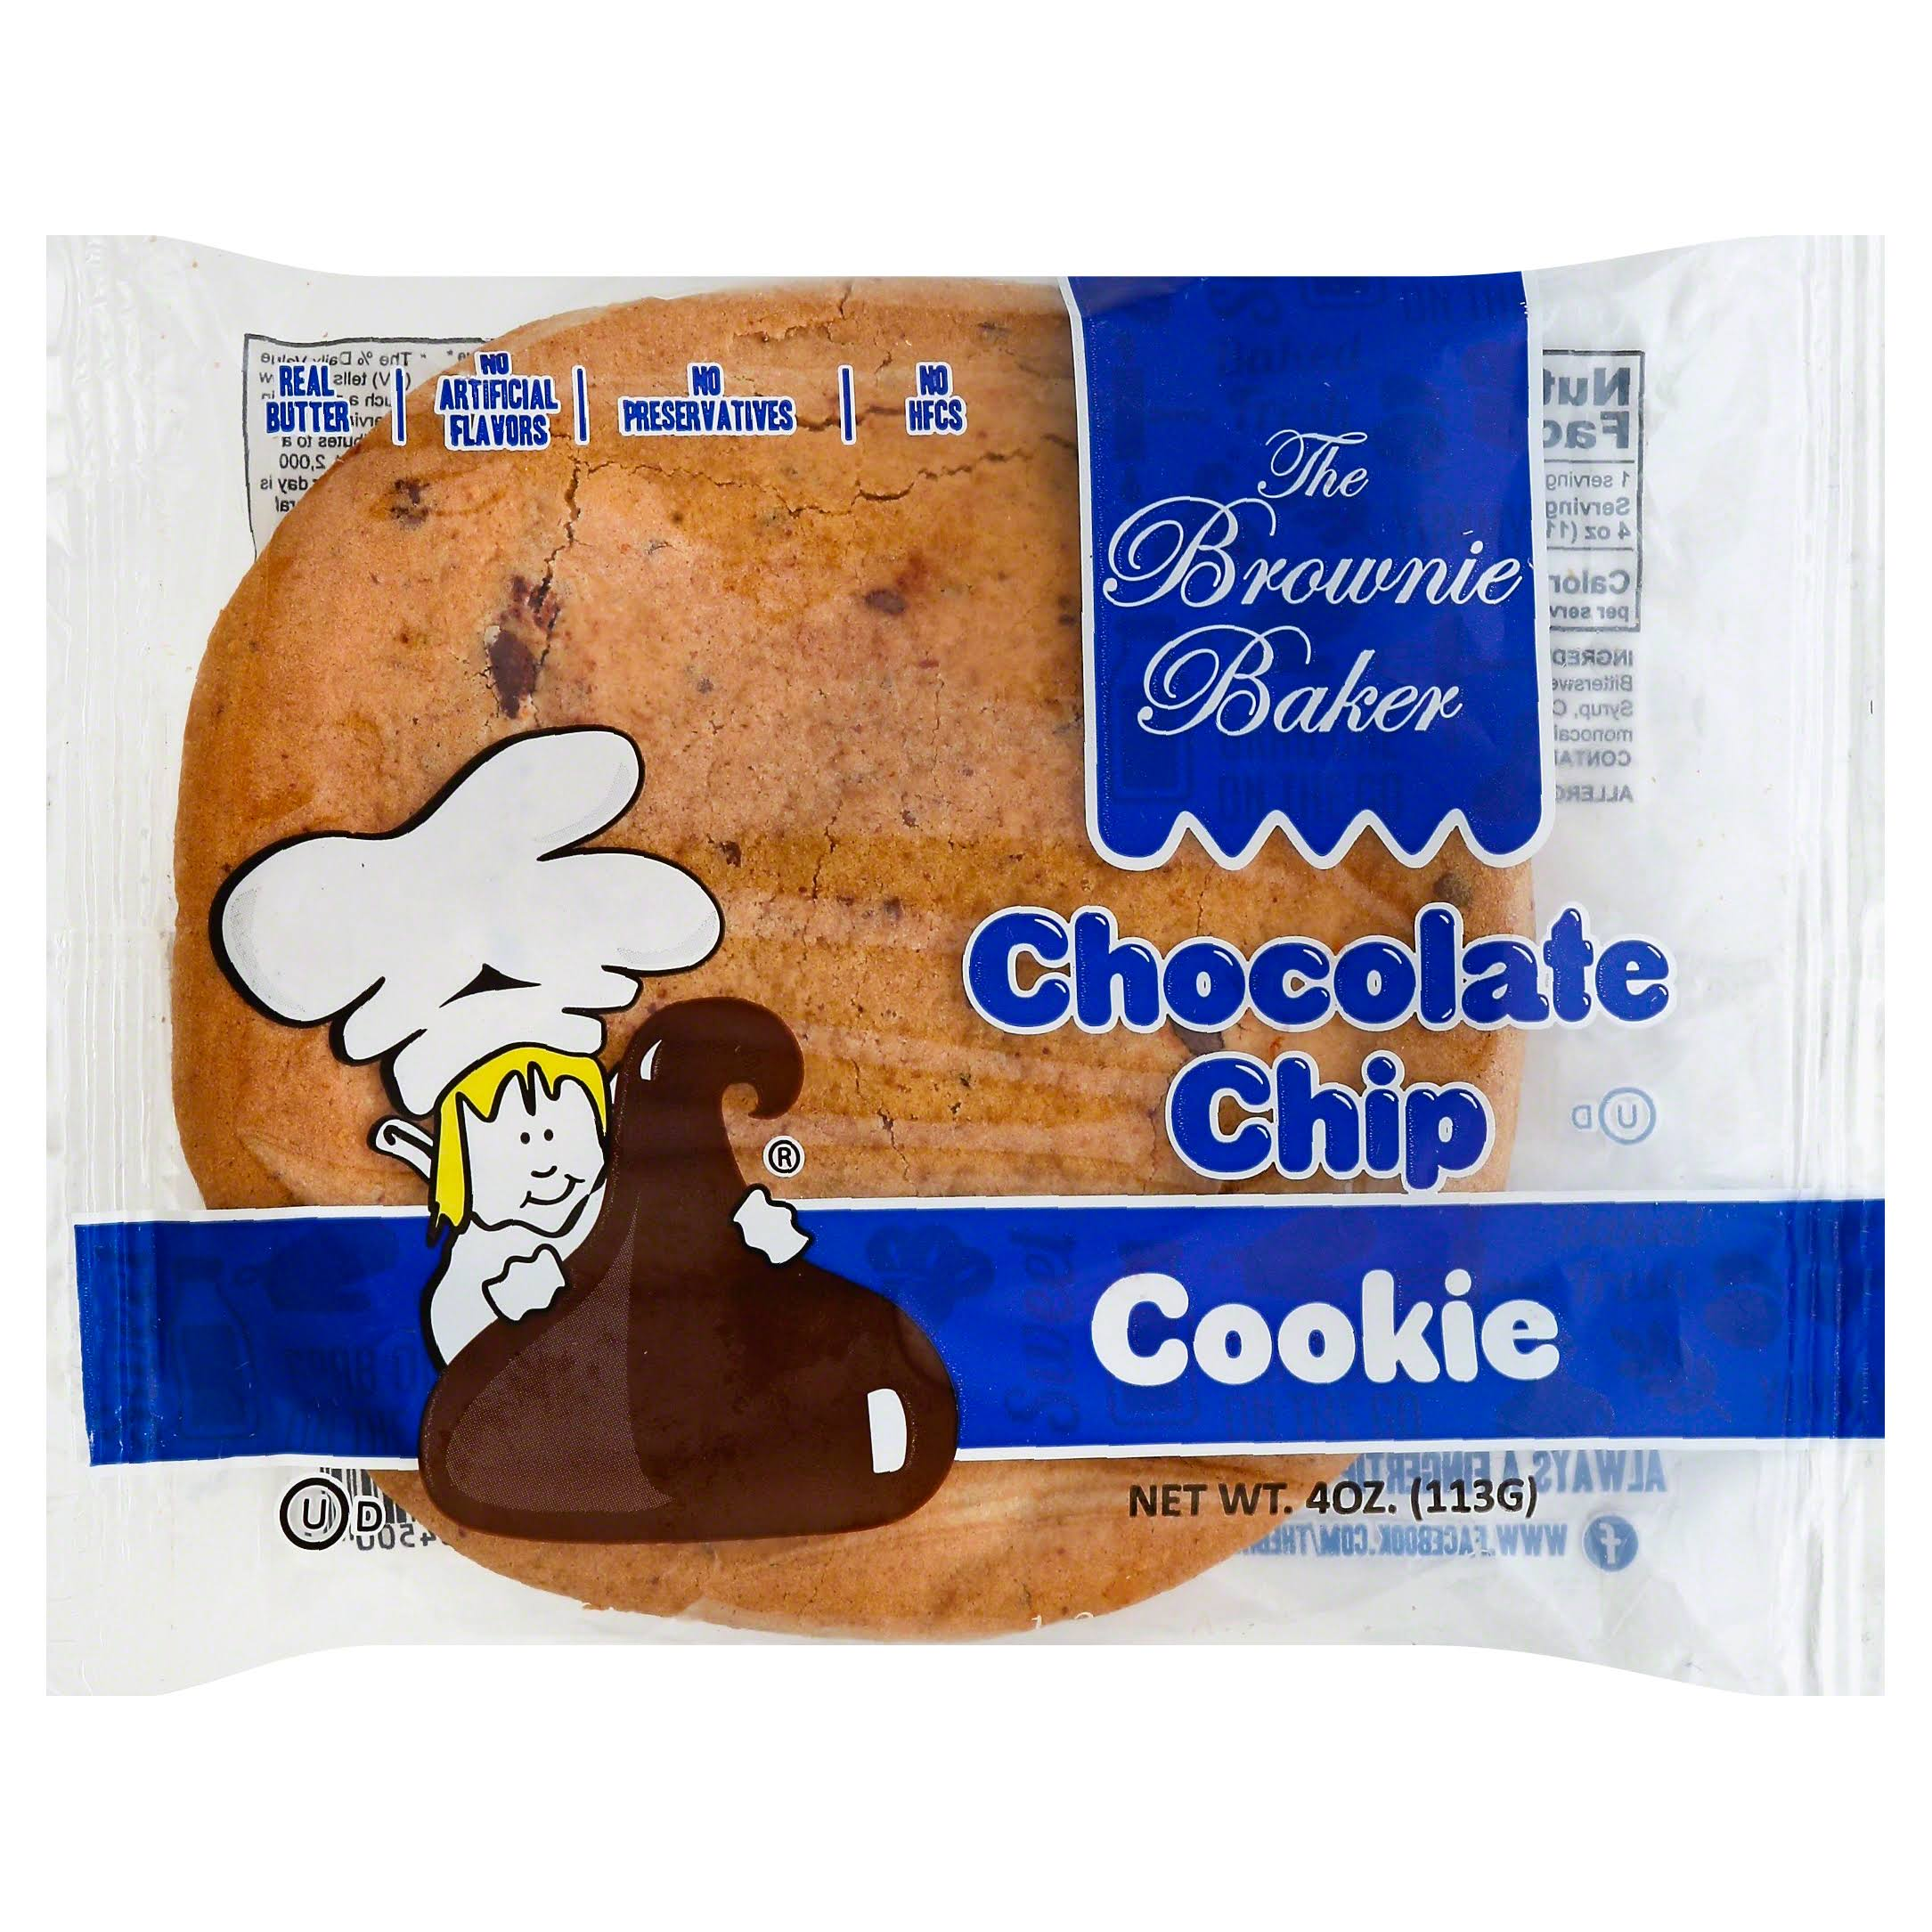 Brownie Baker Cookie, Chocolate Chip - 4 oz